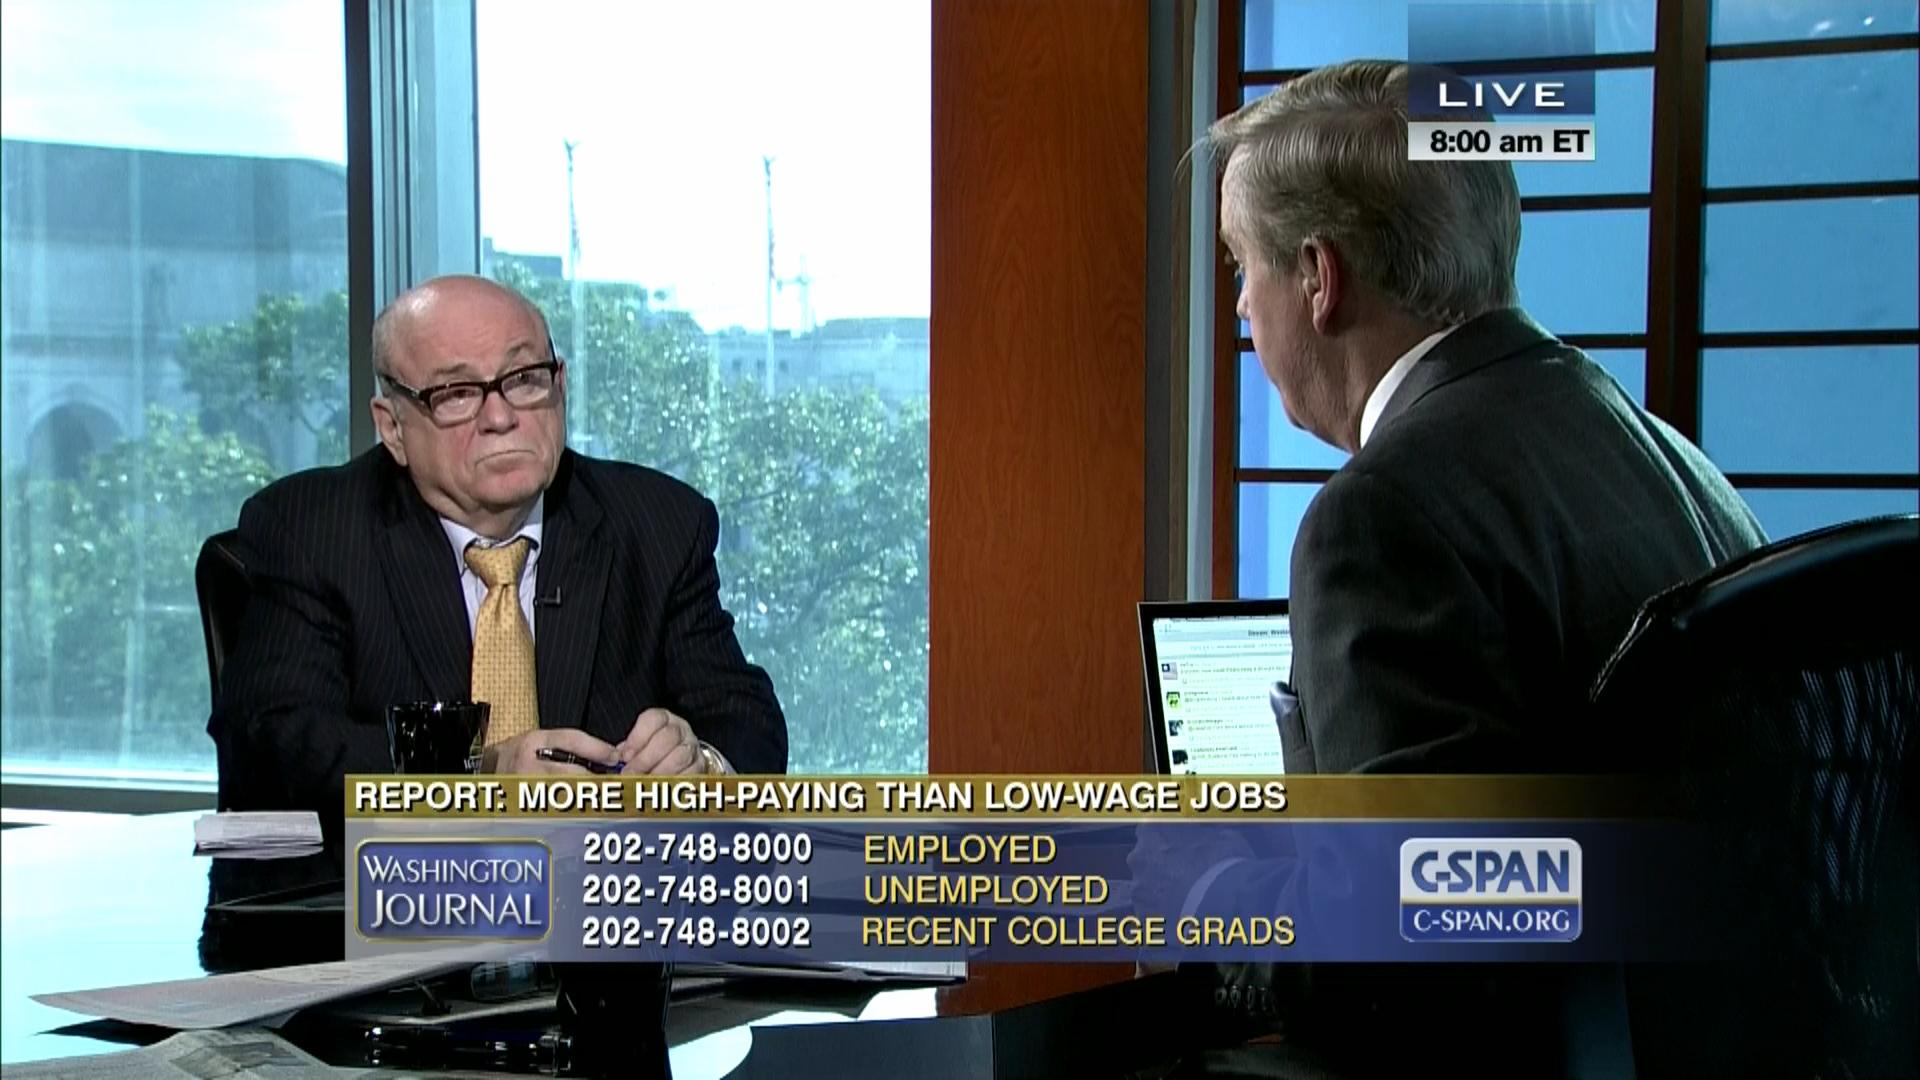 washington journal anthony carnevale low wage video c span org